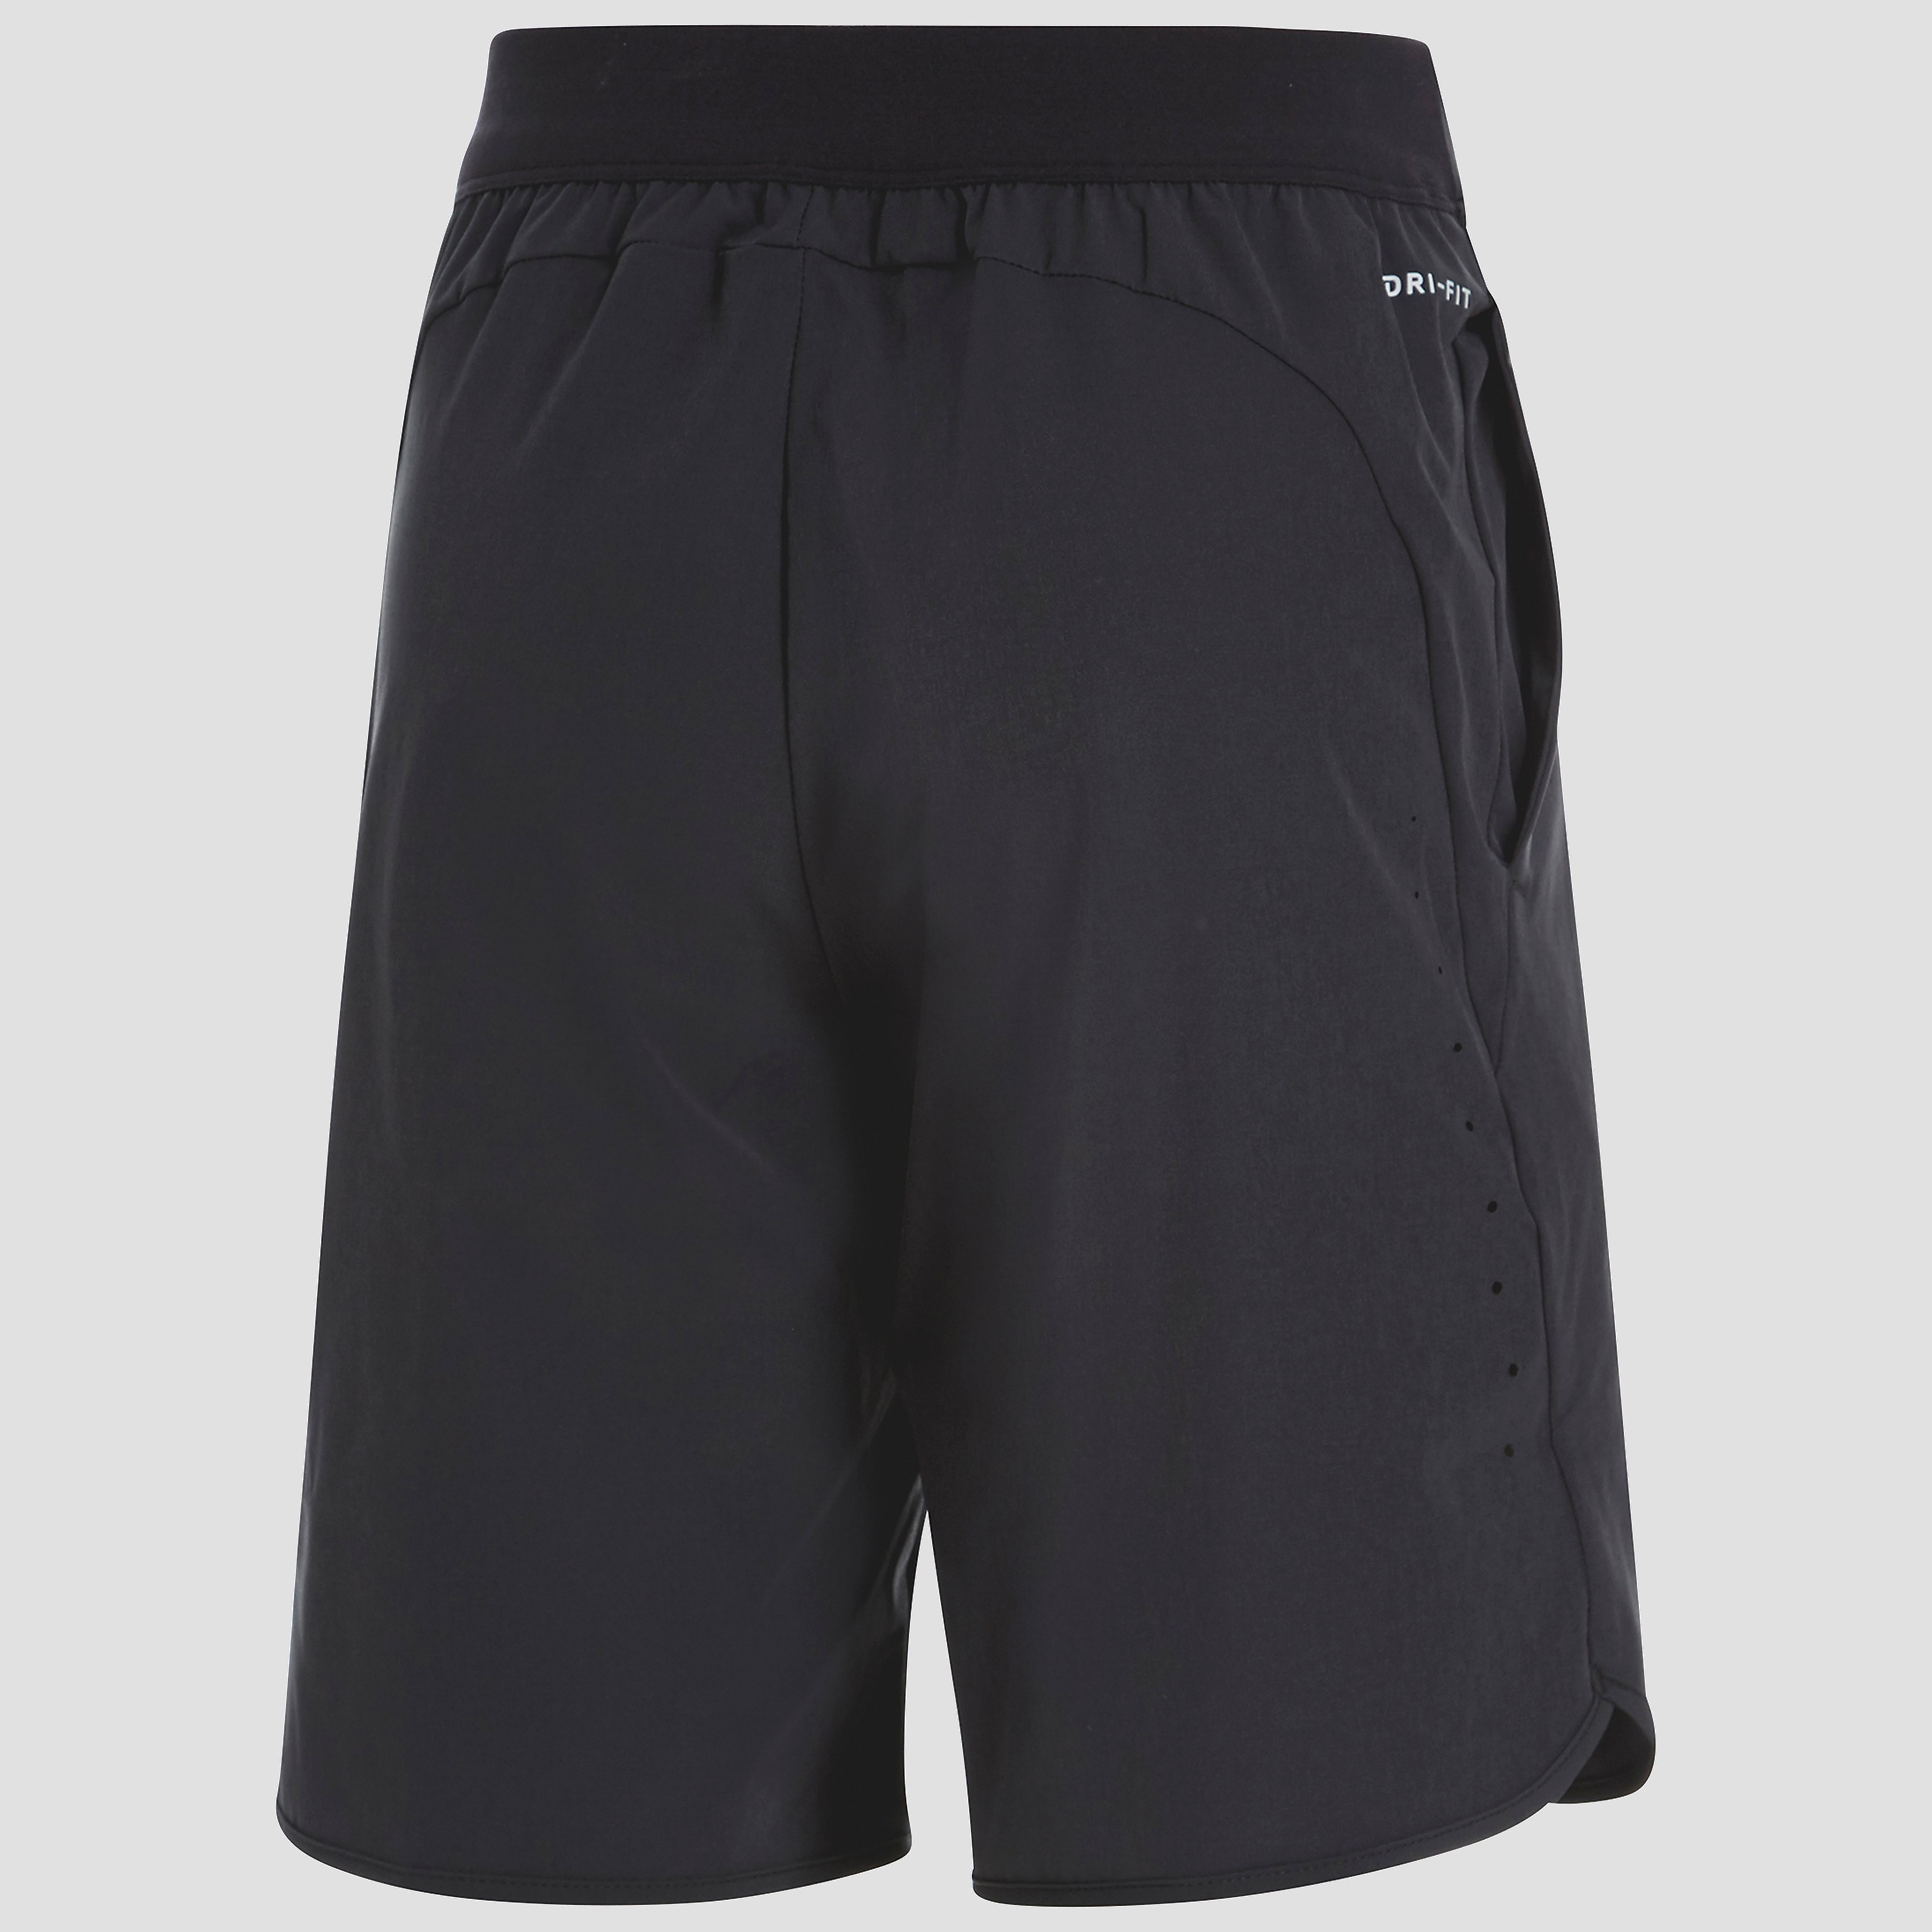 Nike Fall Flex Ace Junior Tennis Shorts